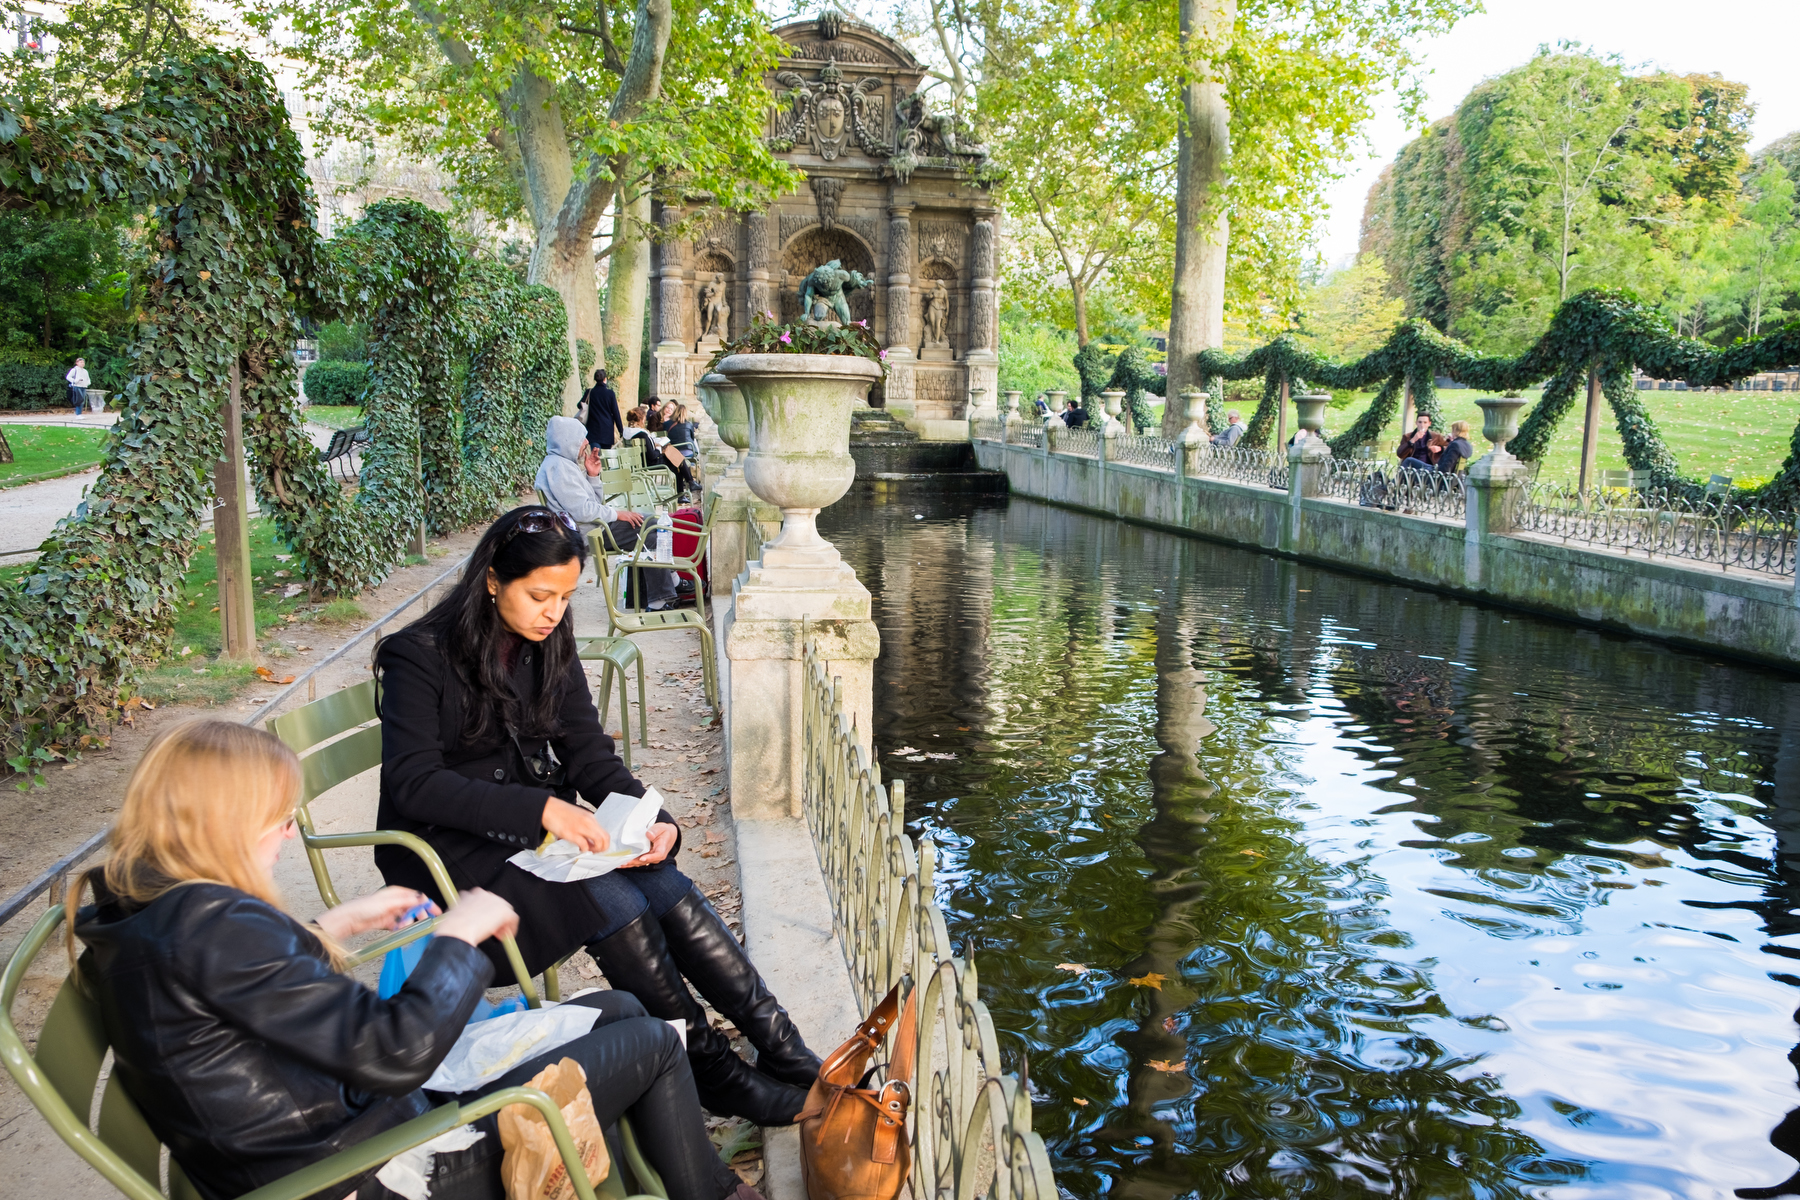 Picnicking in Paris' Jardin du Luxembourg